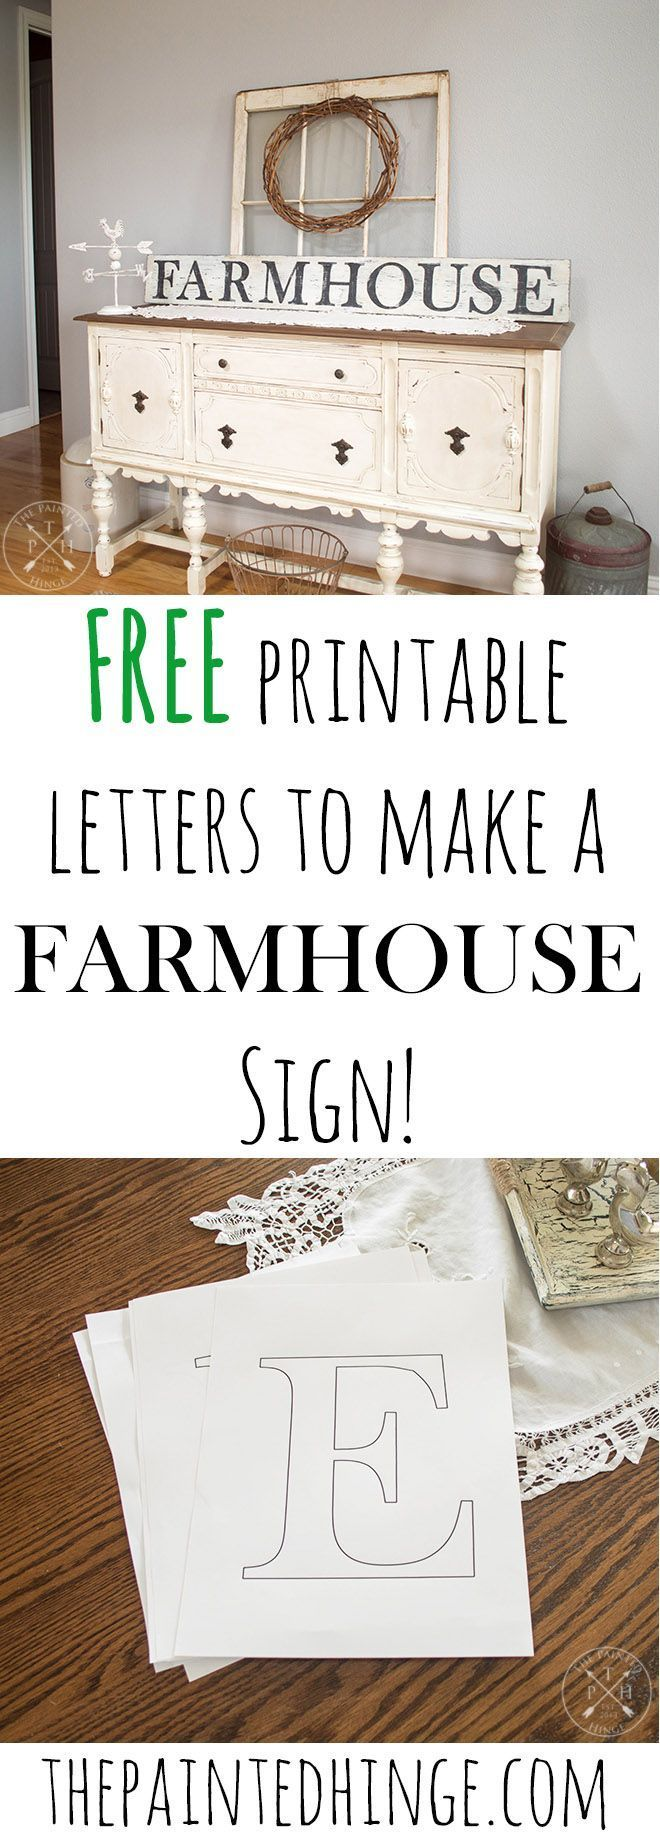 25+ best ideas about Printable letters free on Pinterest ...